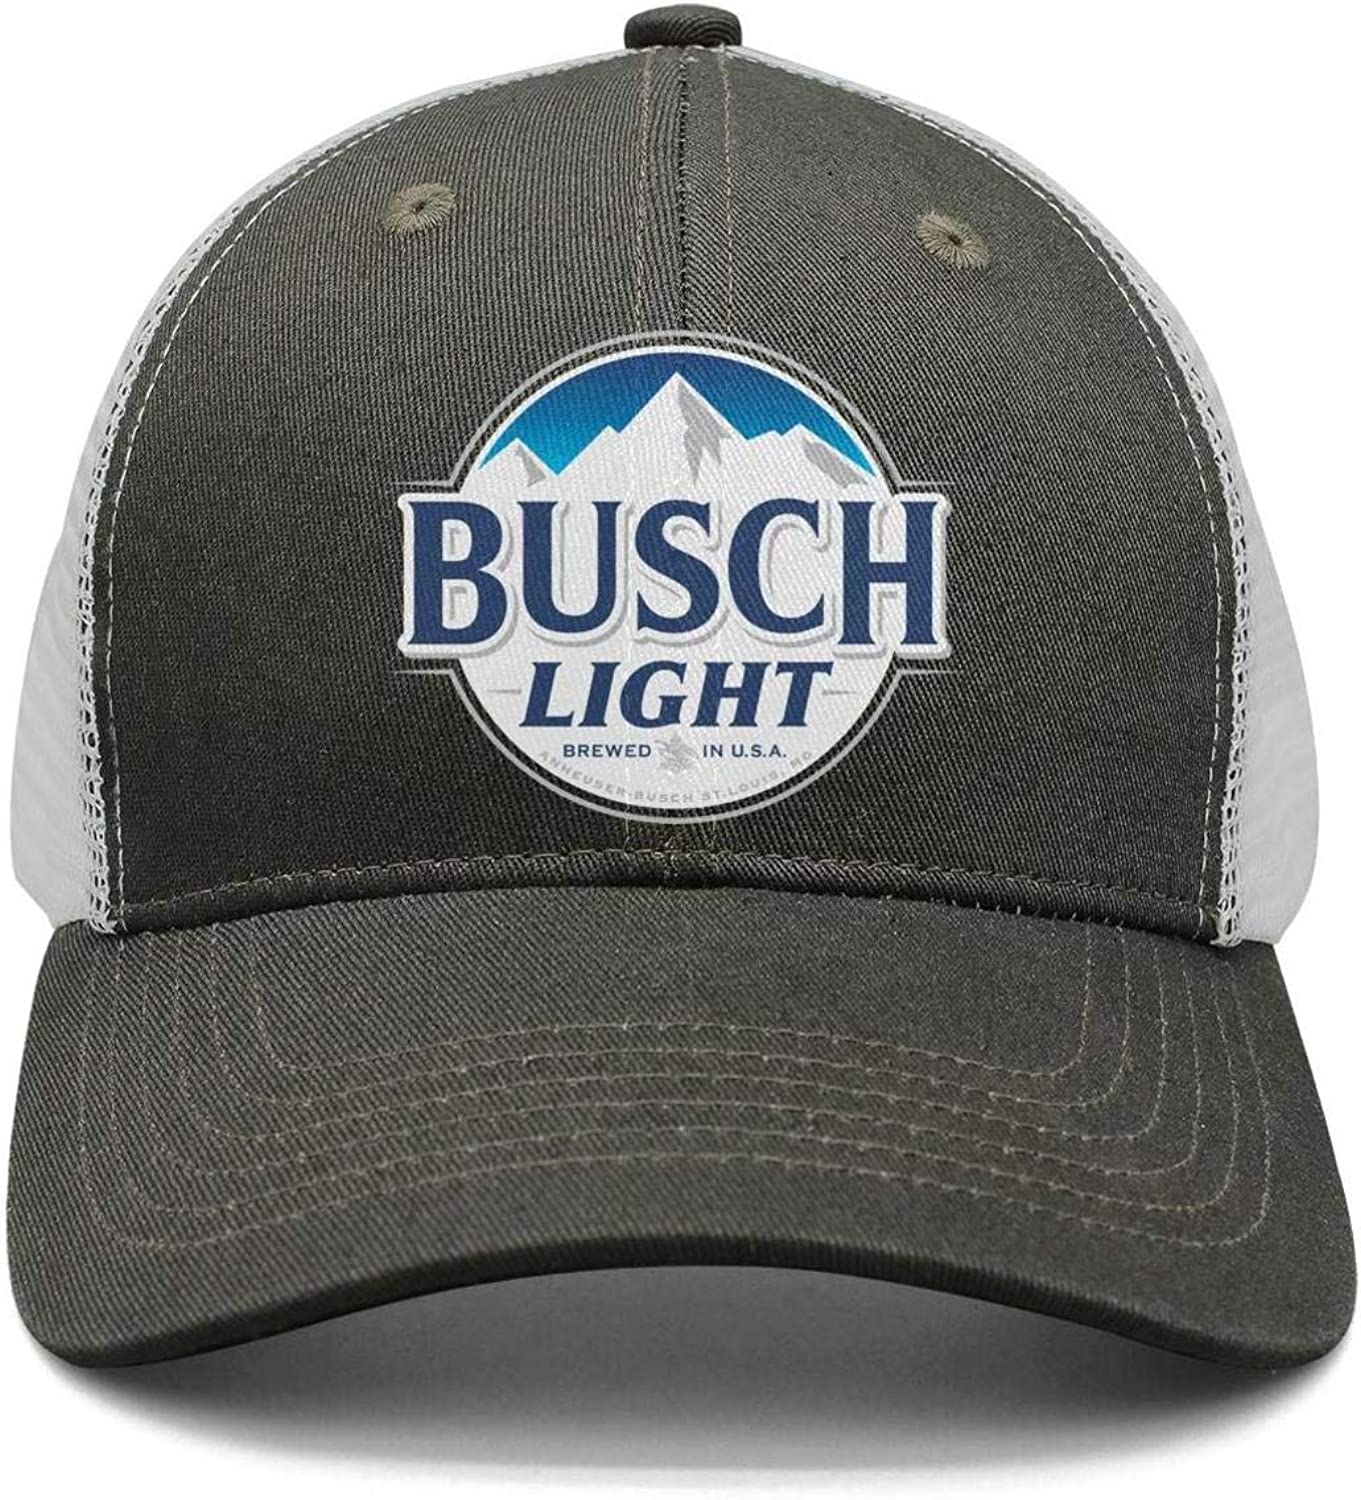 Unisex Light Latte Beer Sign Fitted Caps Mesh Sun Hats